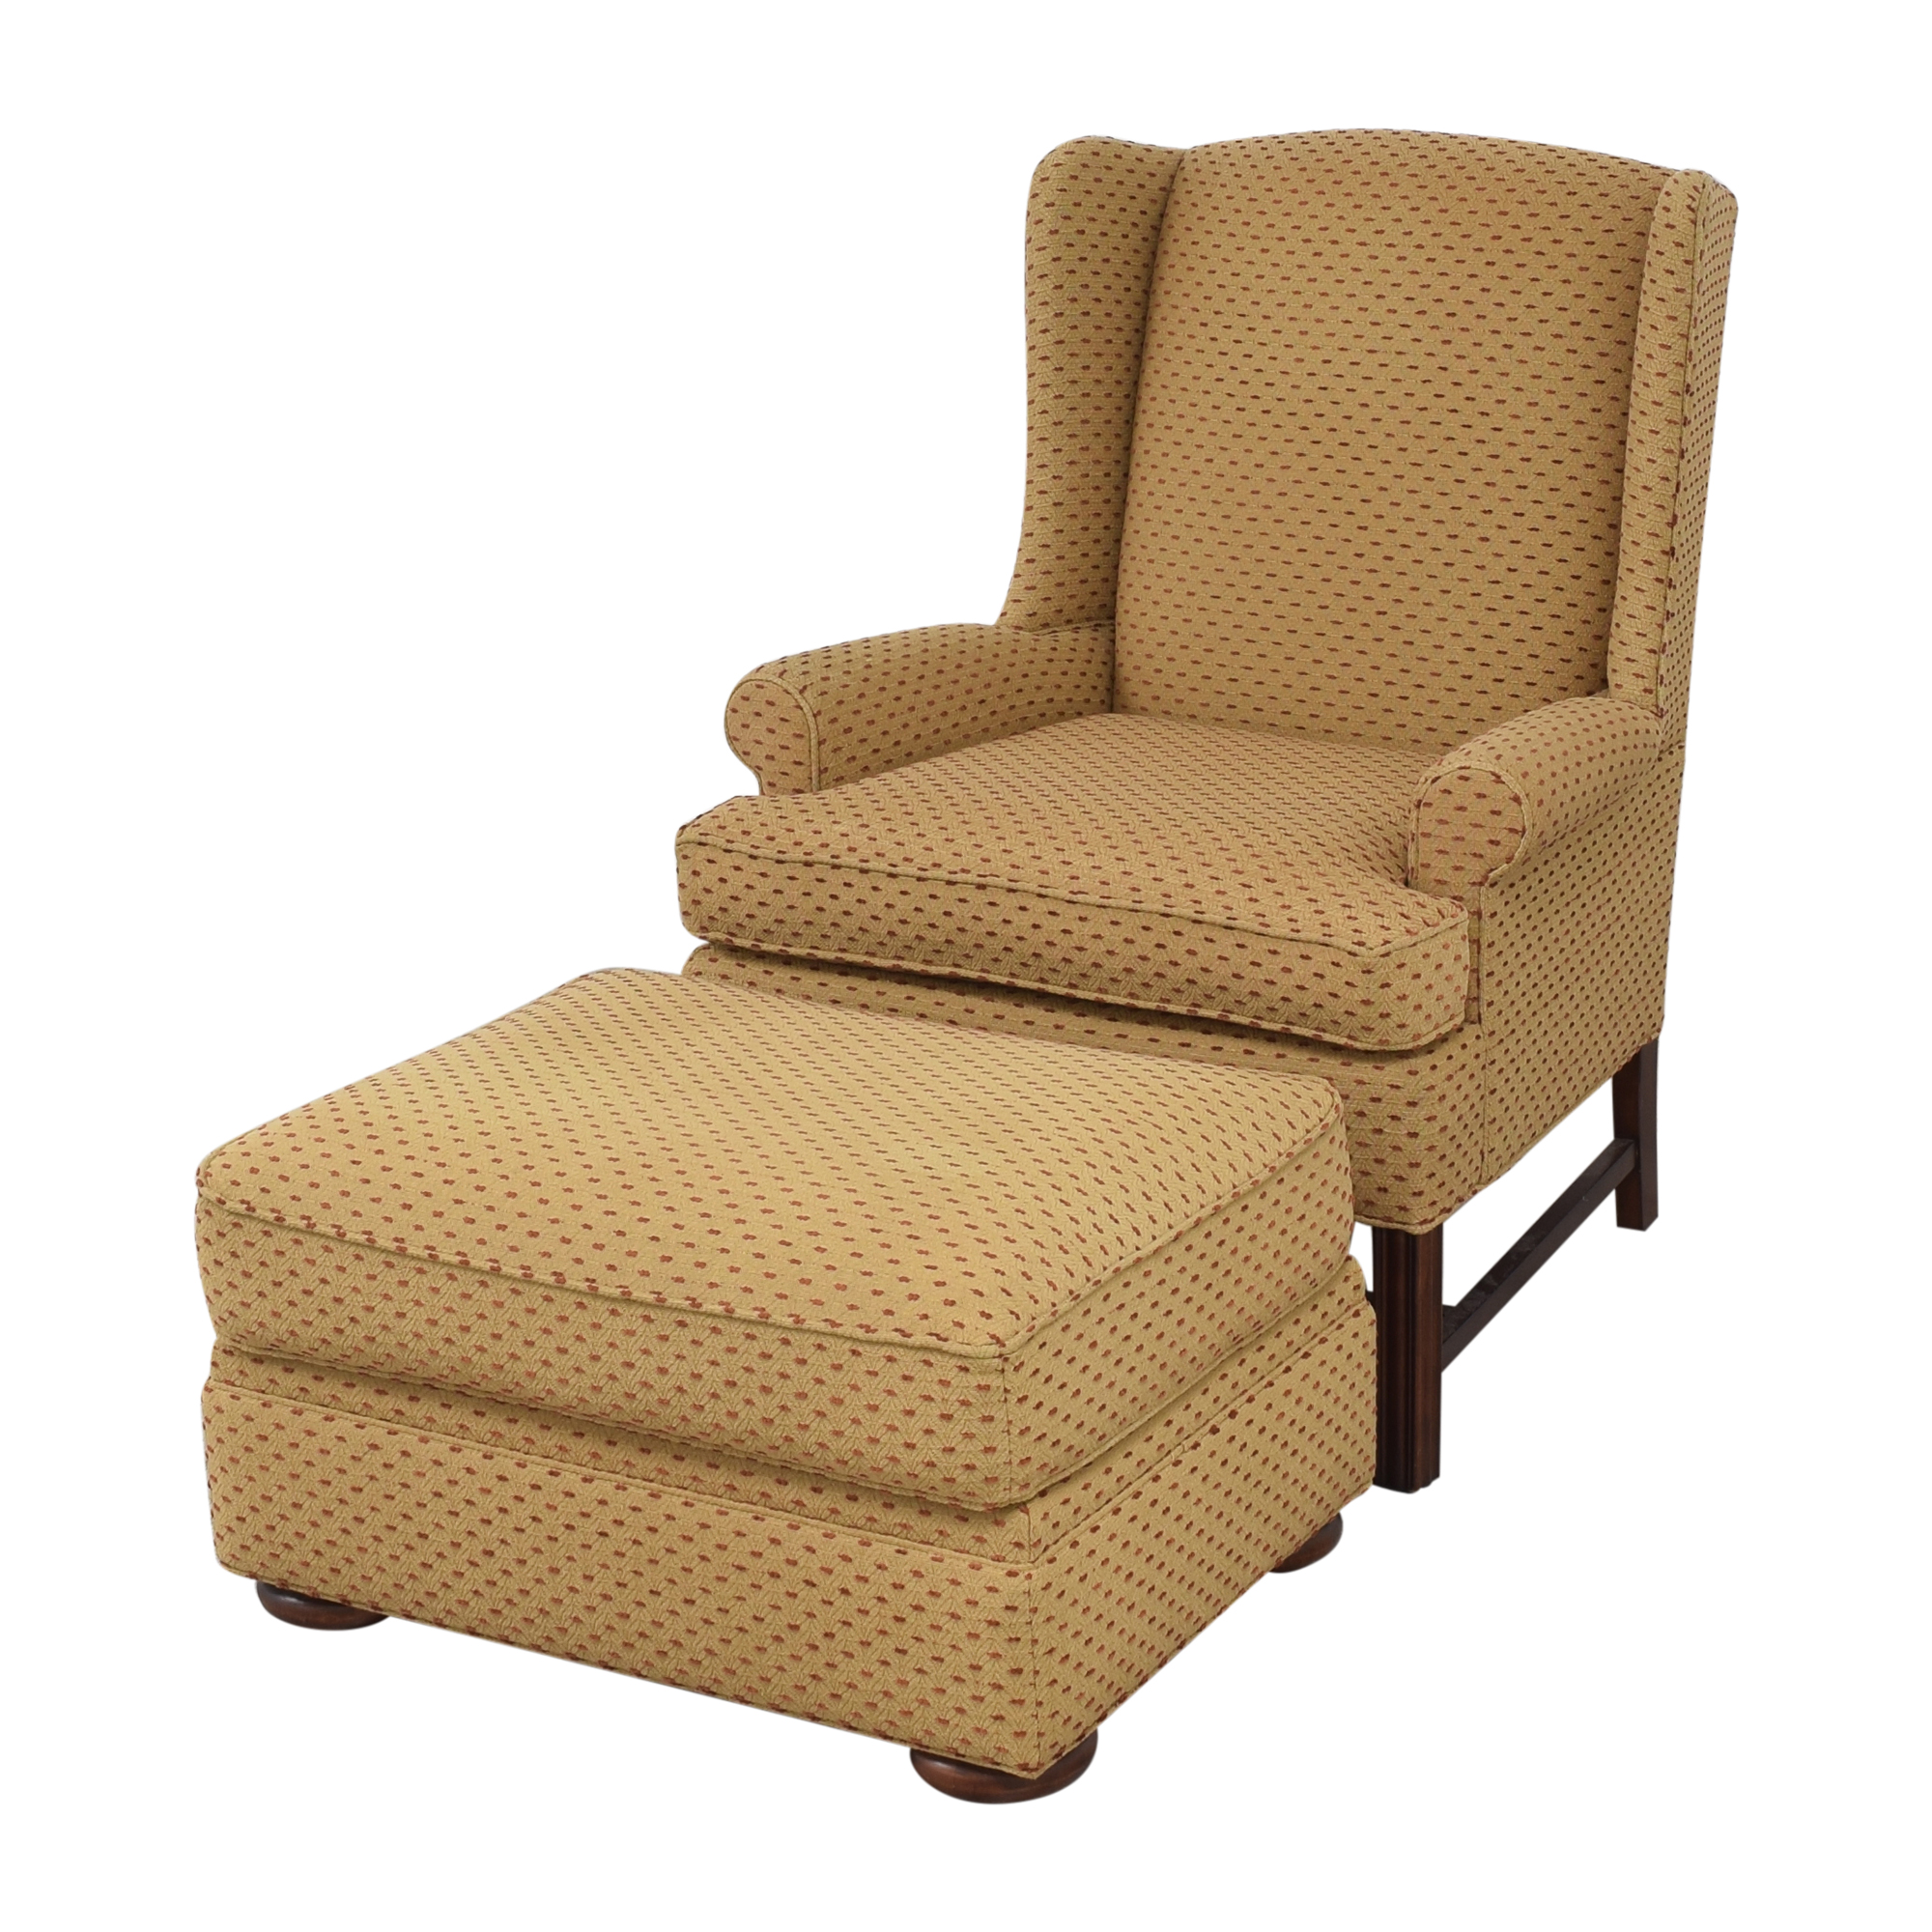 Thomasville Thomasville Accent Chair with Ottoman Chairs